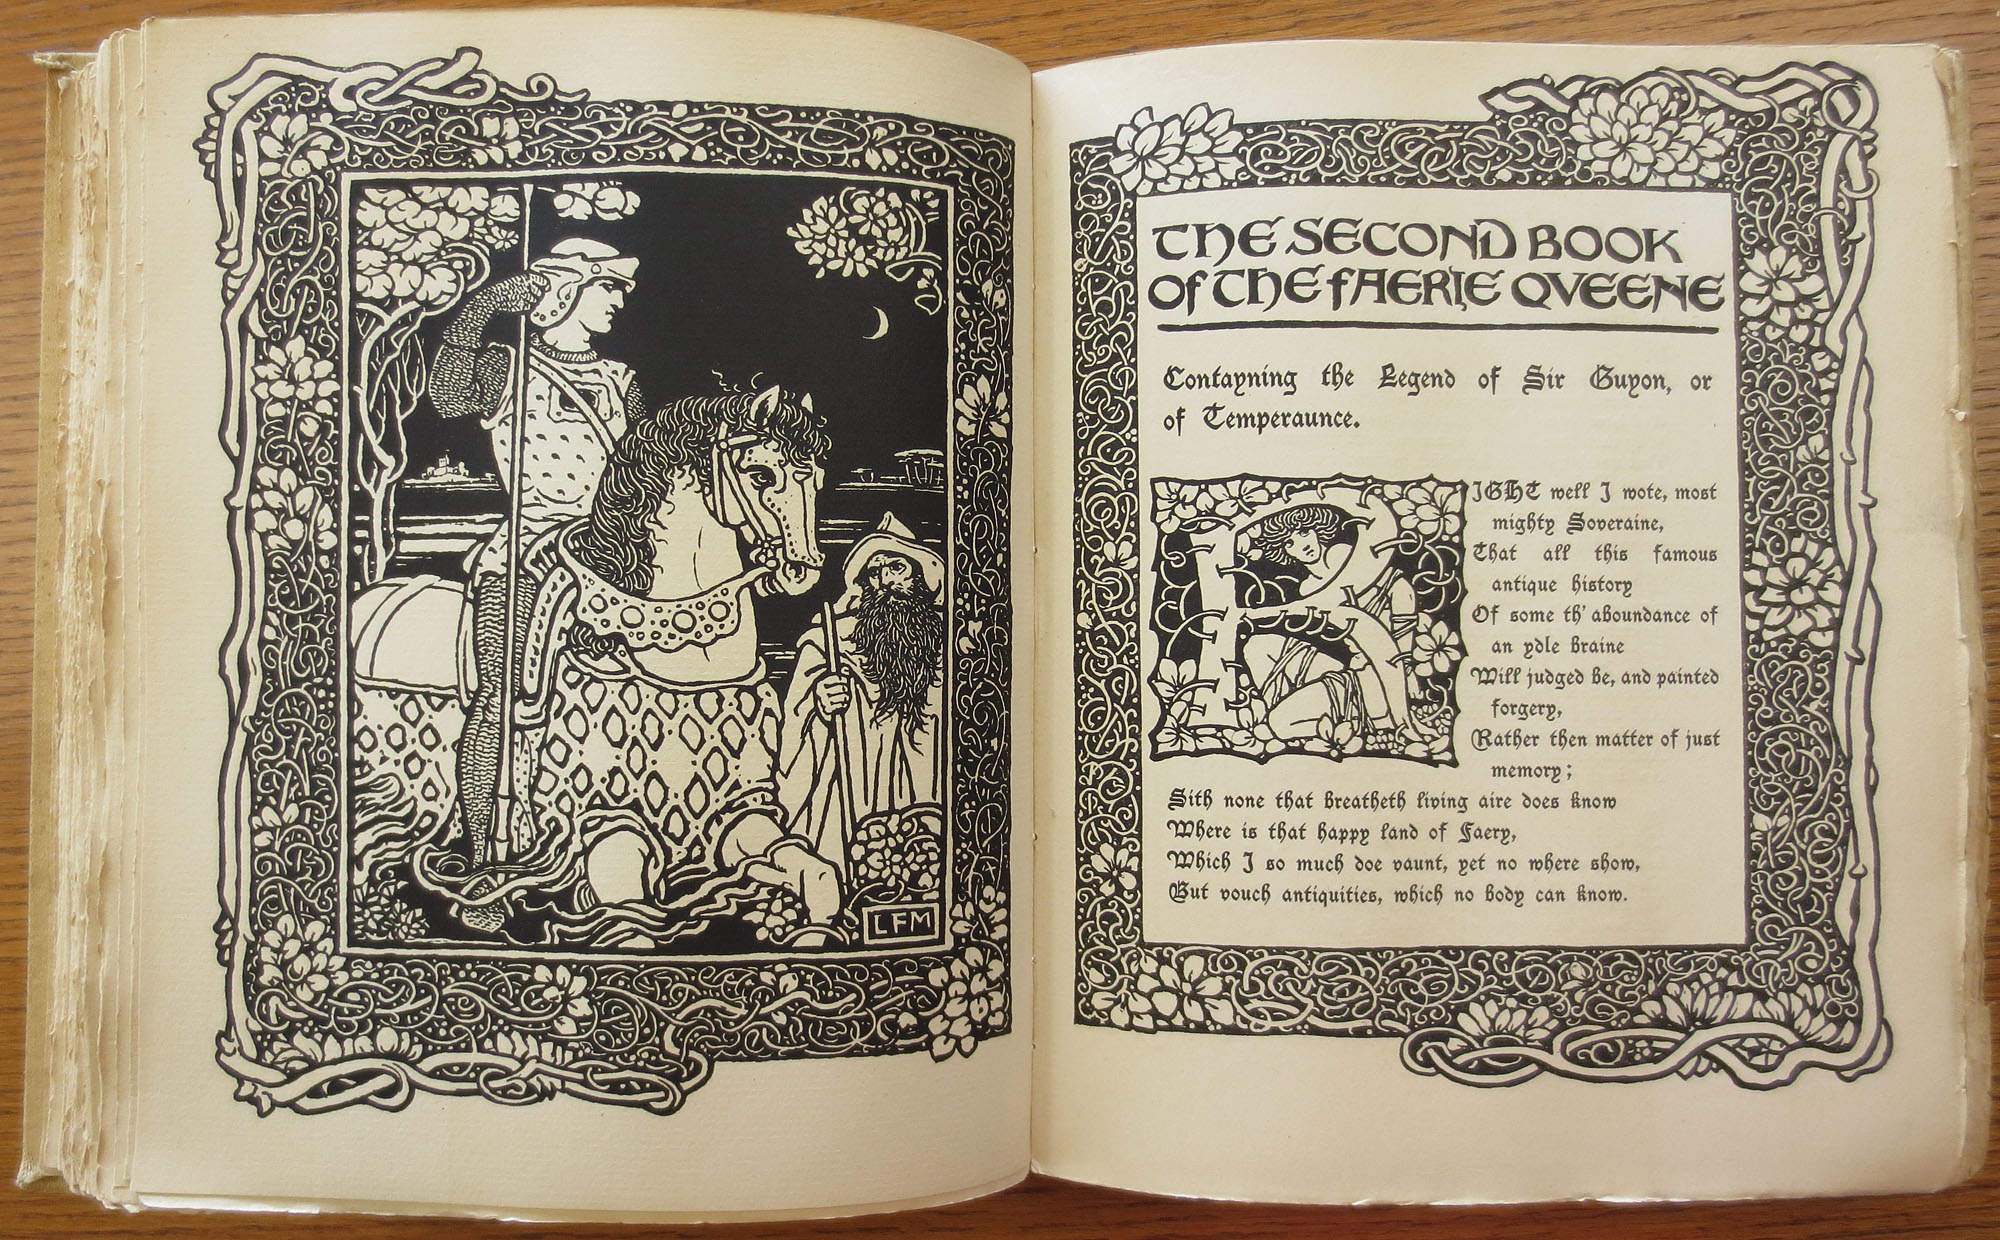 Allegory and humiliation on the BBC's Secret Life of Books